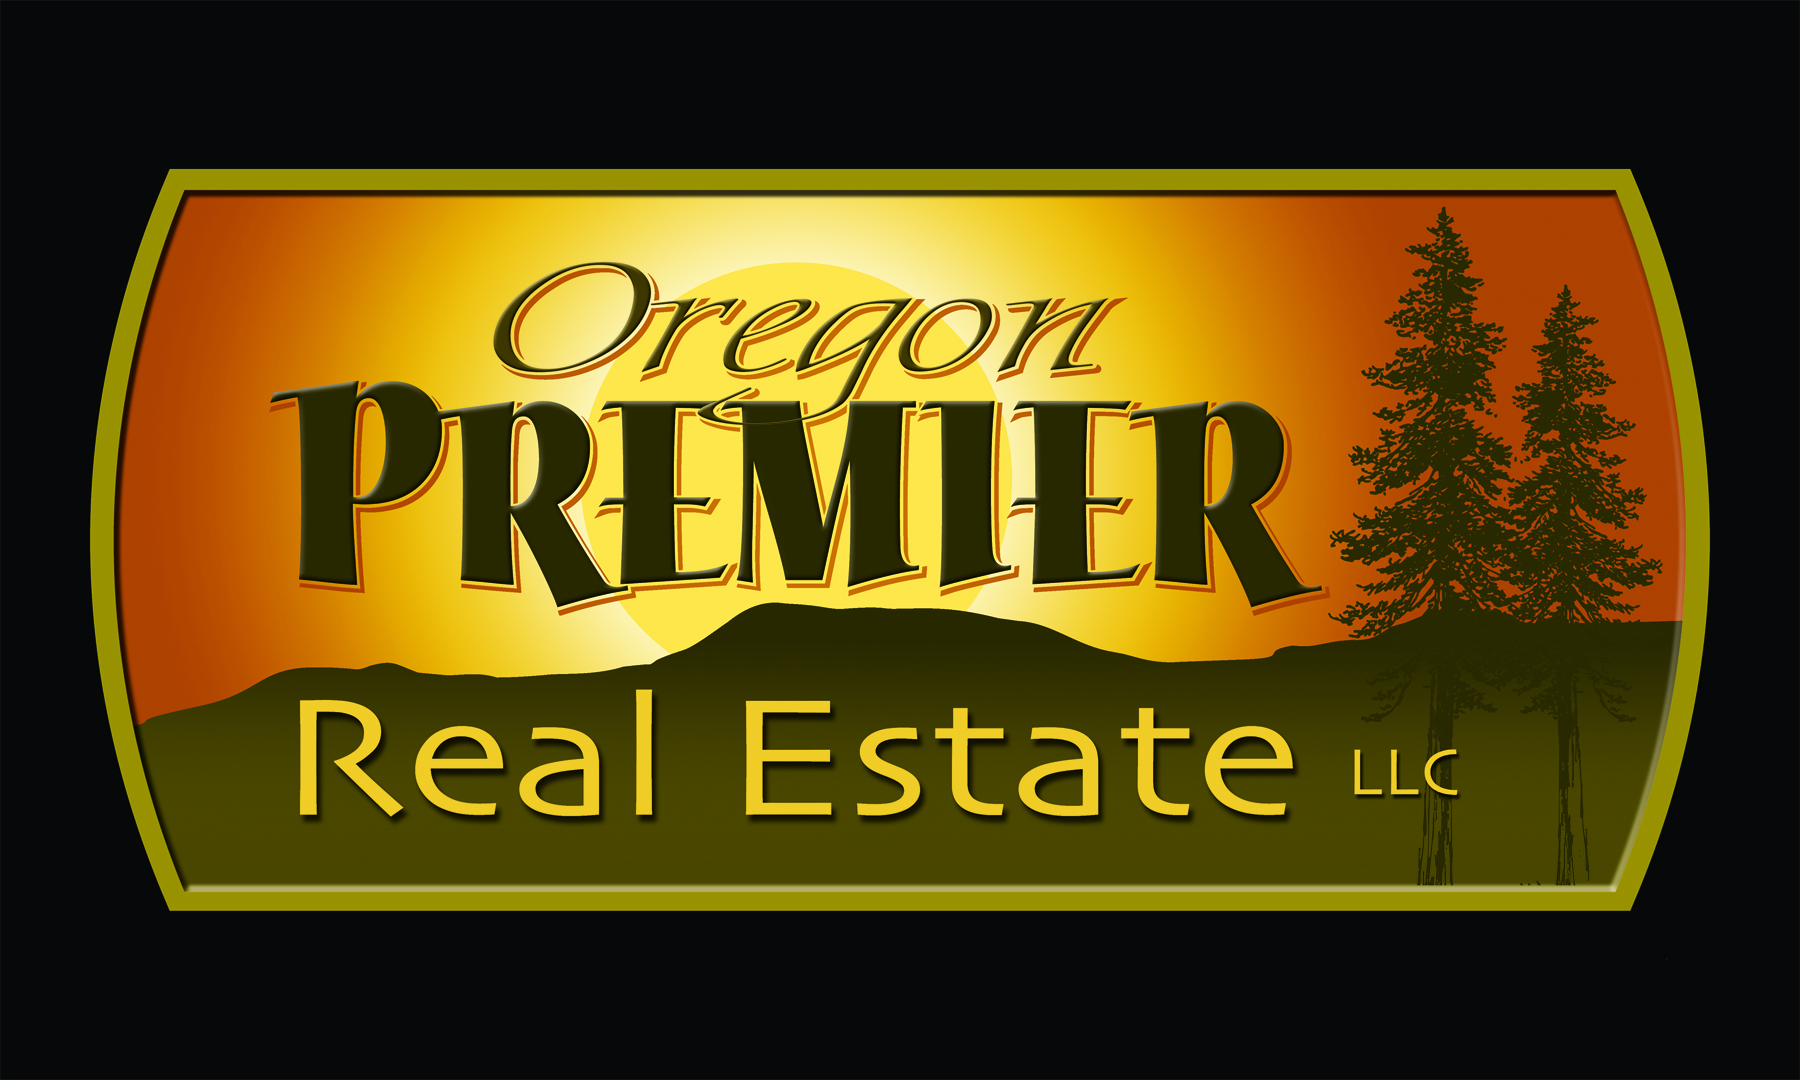 Oregon Premier Real Estate